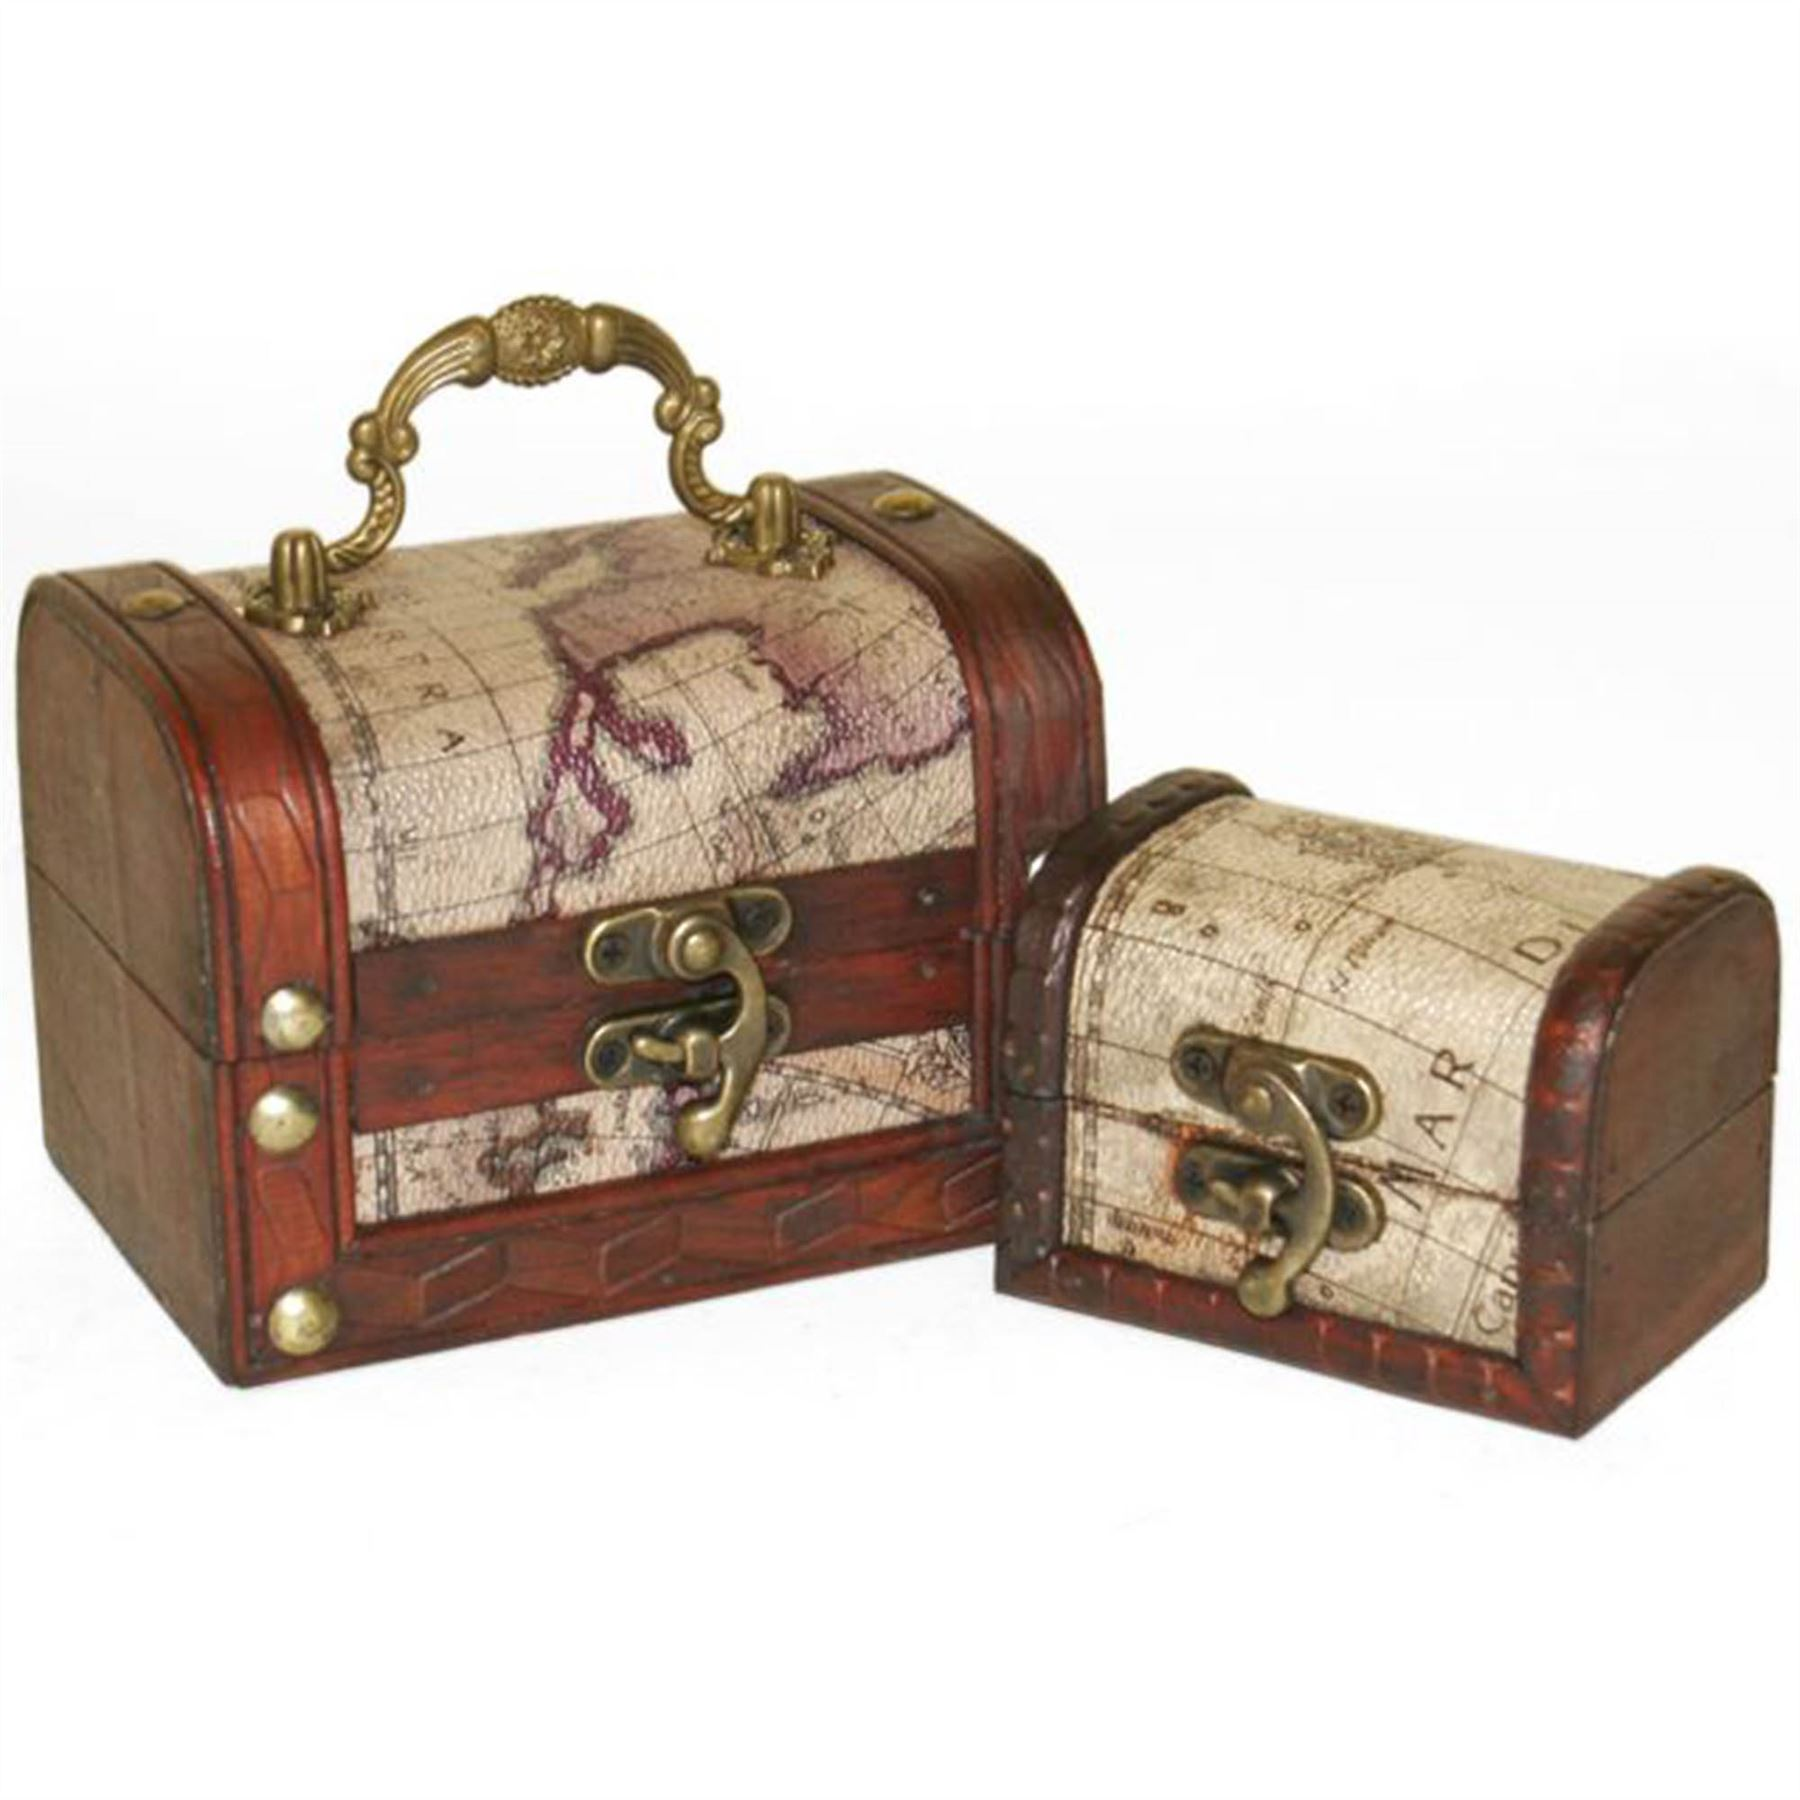 2-x-Wood-Chests-Diamond-or-Map-Chest-Wooden-Trinket-Box-Treasure-Secret-Stash